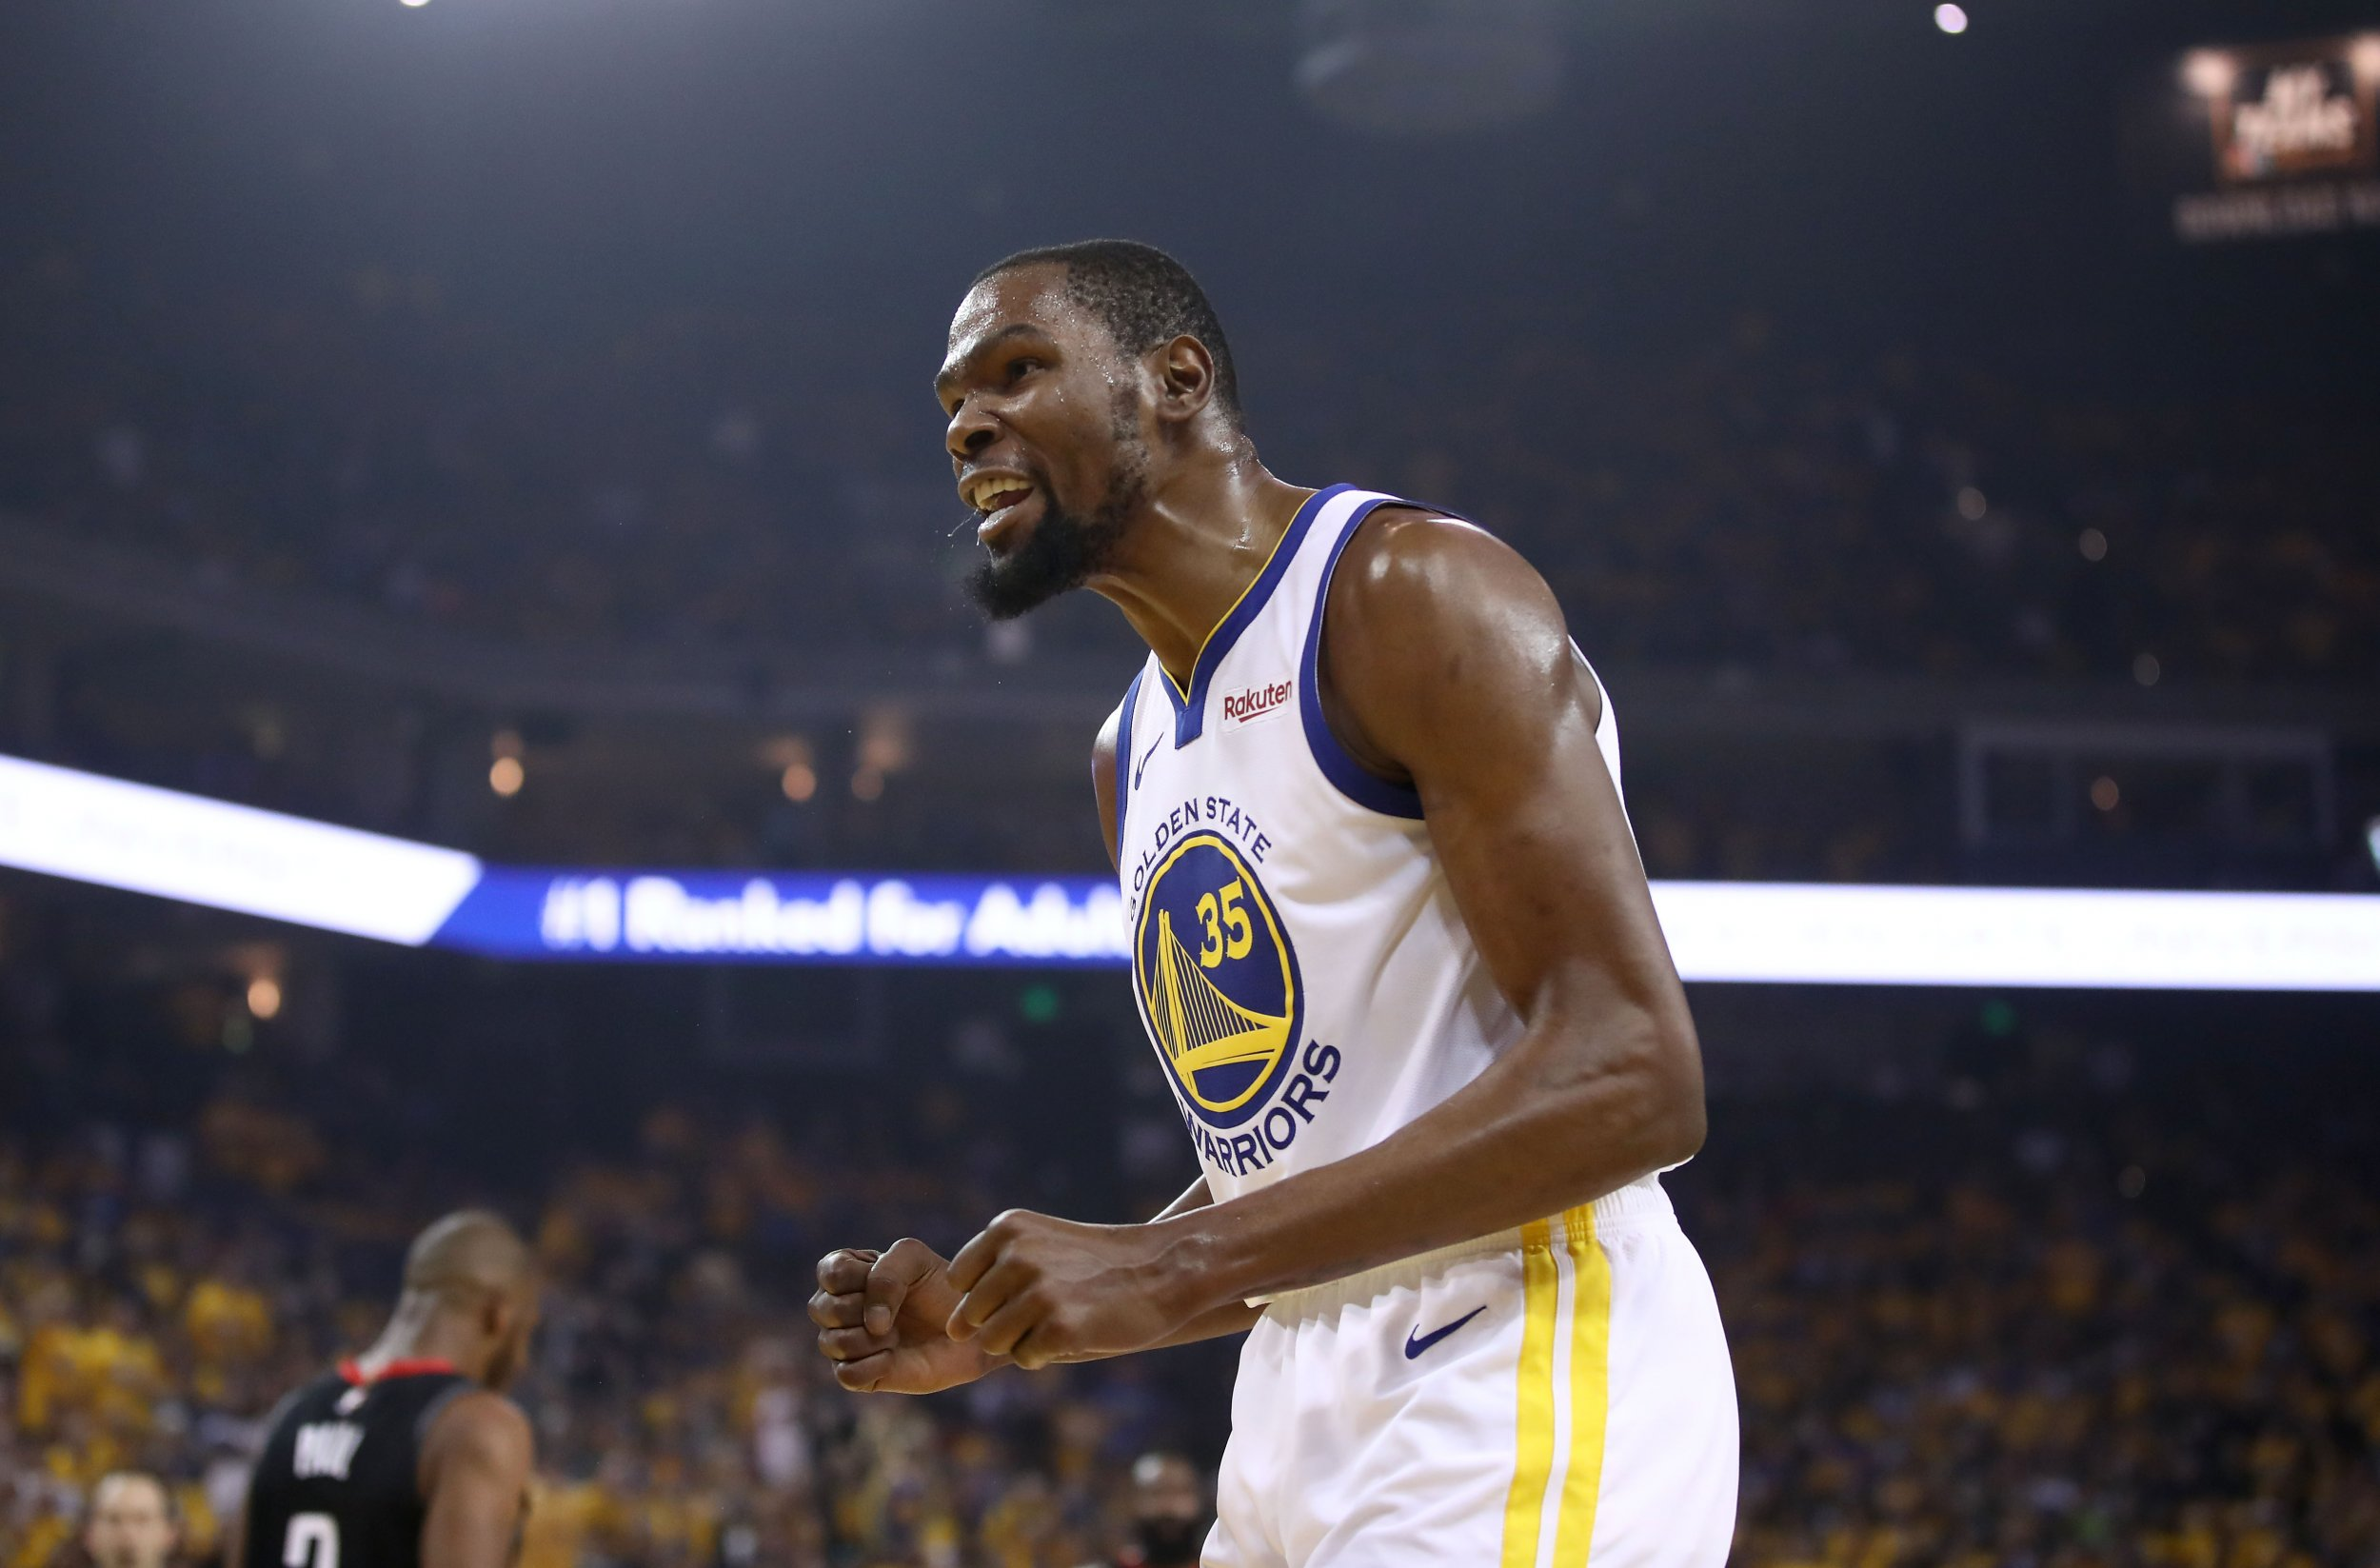 Nba Finals 2019 What The Experts Say Ahead Of Game 5 Toronto Raptors Vs Golden State Warriors Predictions